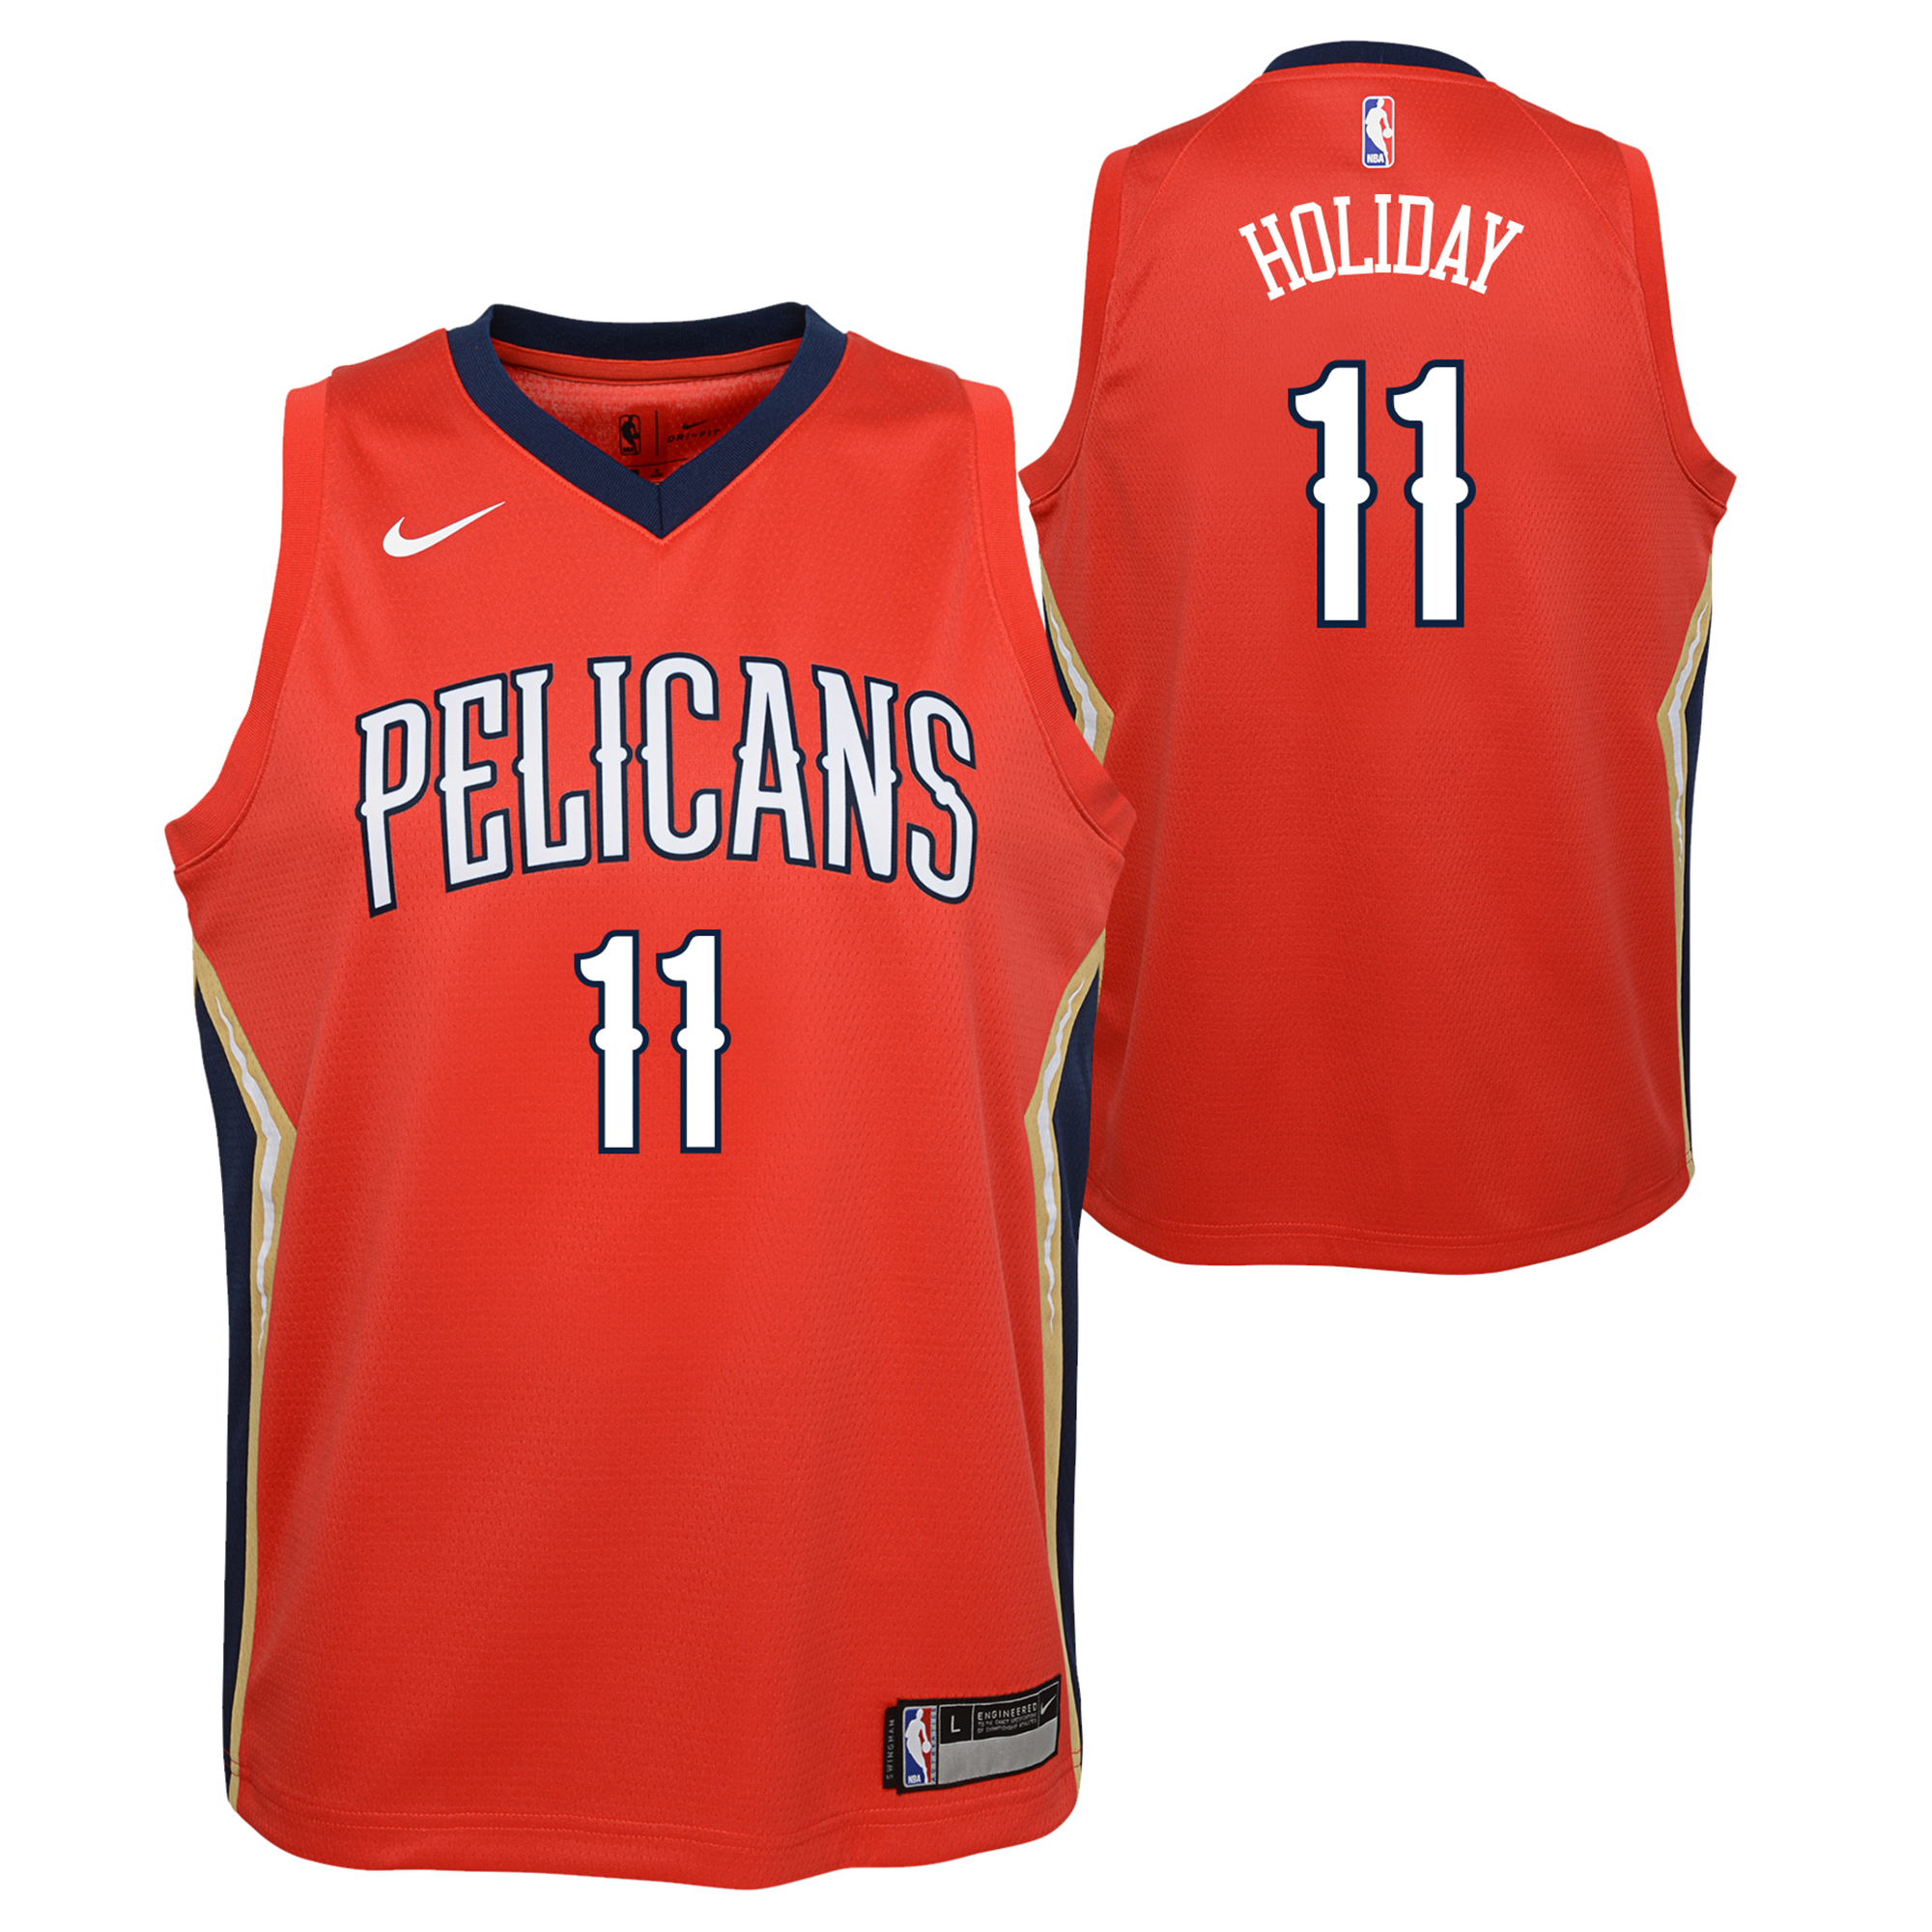 New Orleans Pelicans Nike Statement Swingman Camiseta de la NBA - Jrue Holiday - Adolescentes